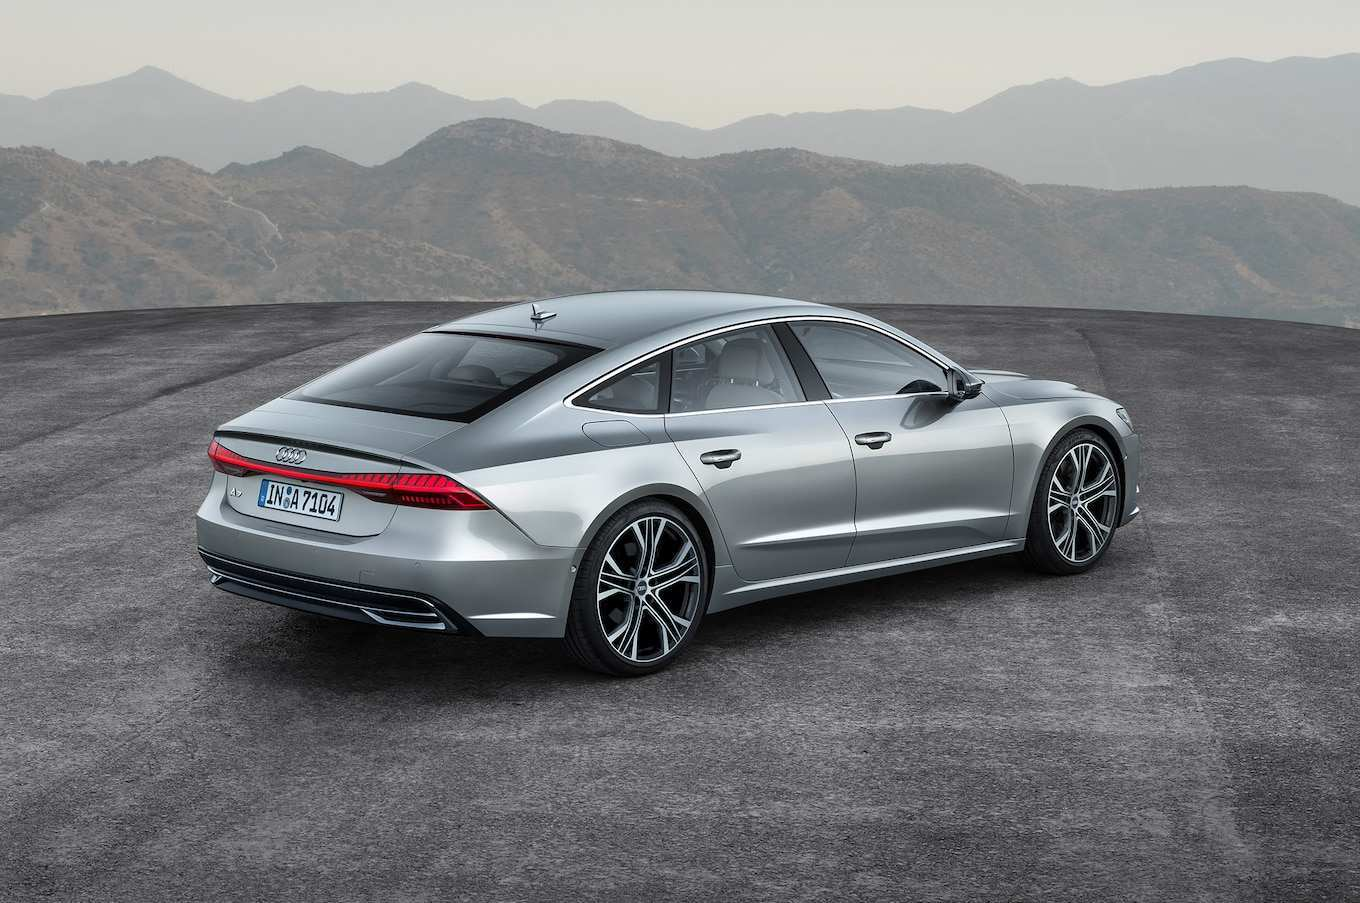 20 All New 2019 Audi A7 Debut Style by 2019 Audi A7 Debut